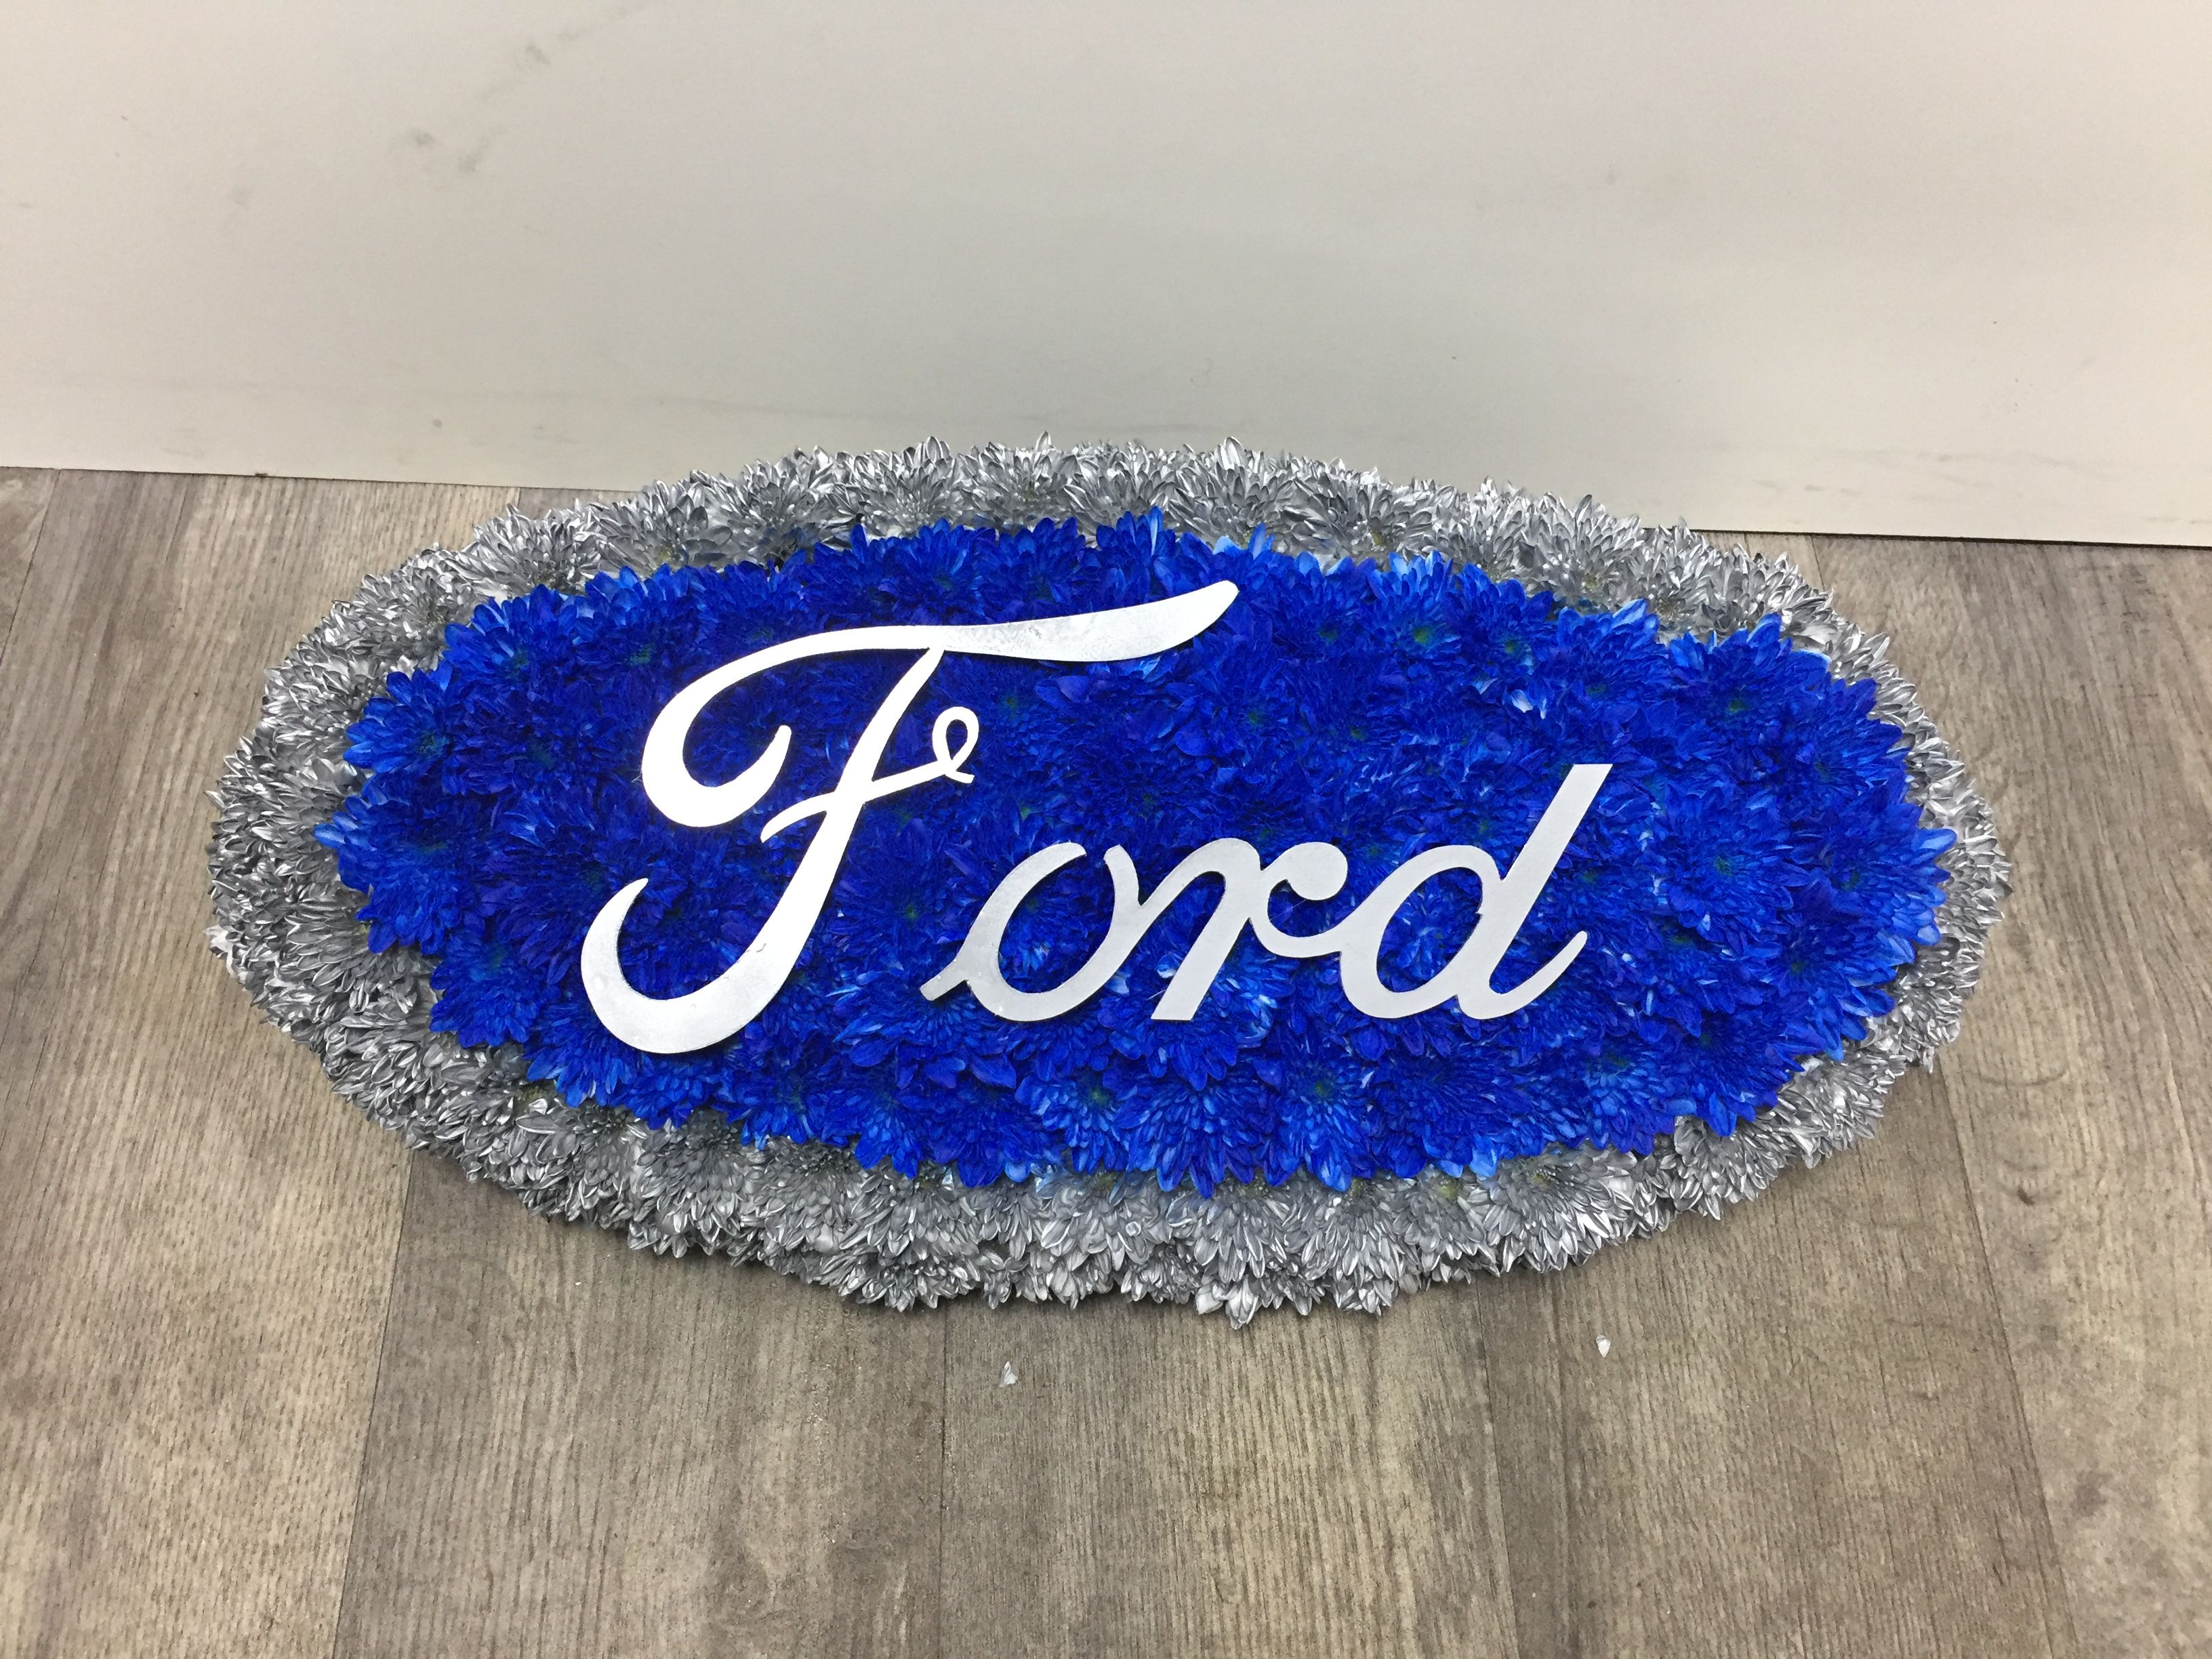 Ford badge bespoke funeral flowers 01909808129 the bespoke flower ford badge bespoke funeral flowers 01909808129 izmirmasajfo Image collections